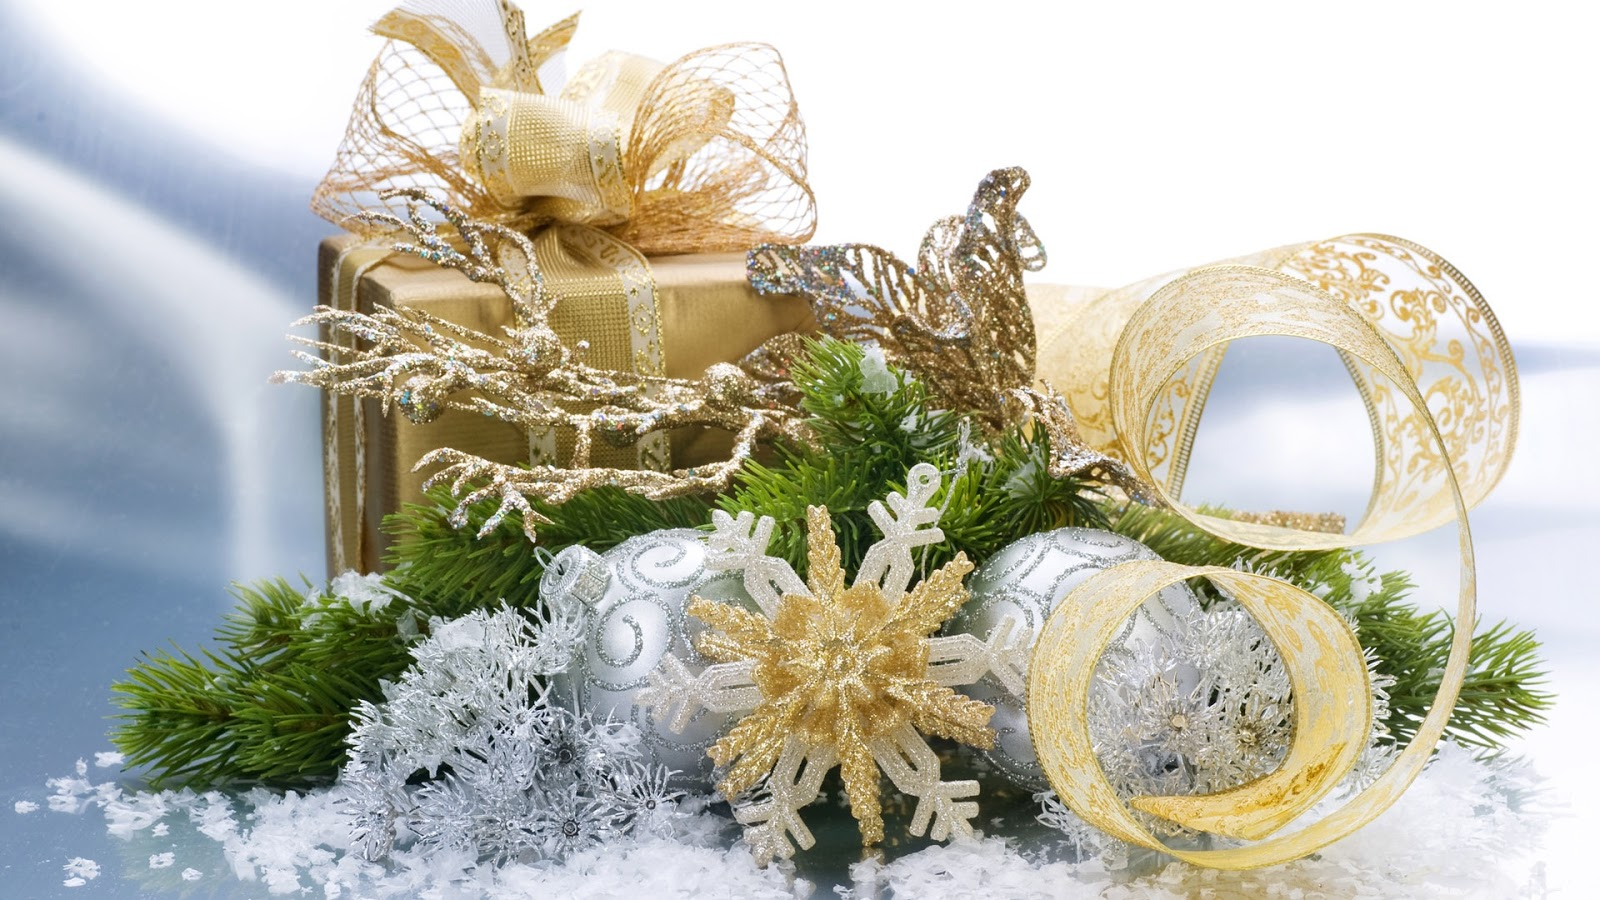 Christmas High Definition Wallpaper Free Download